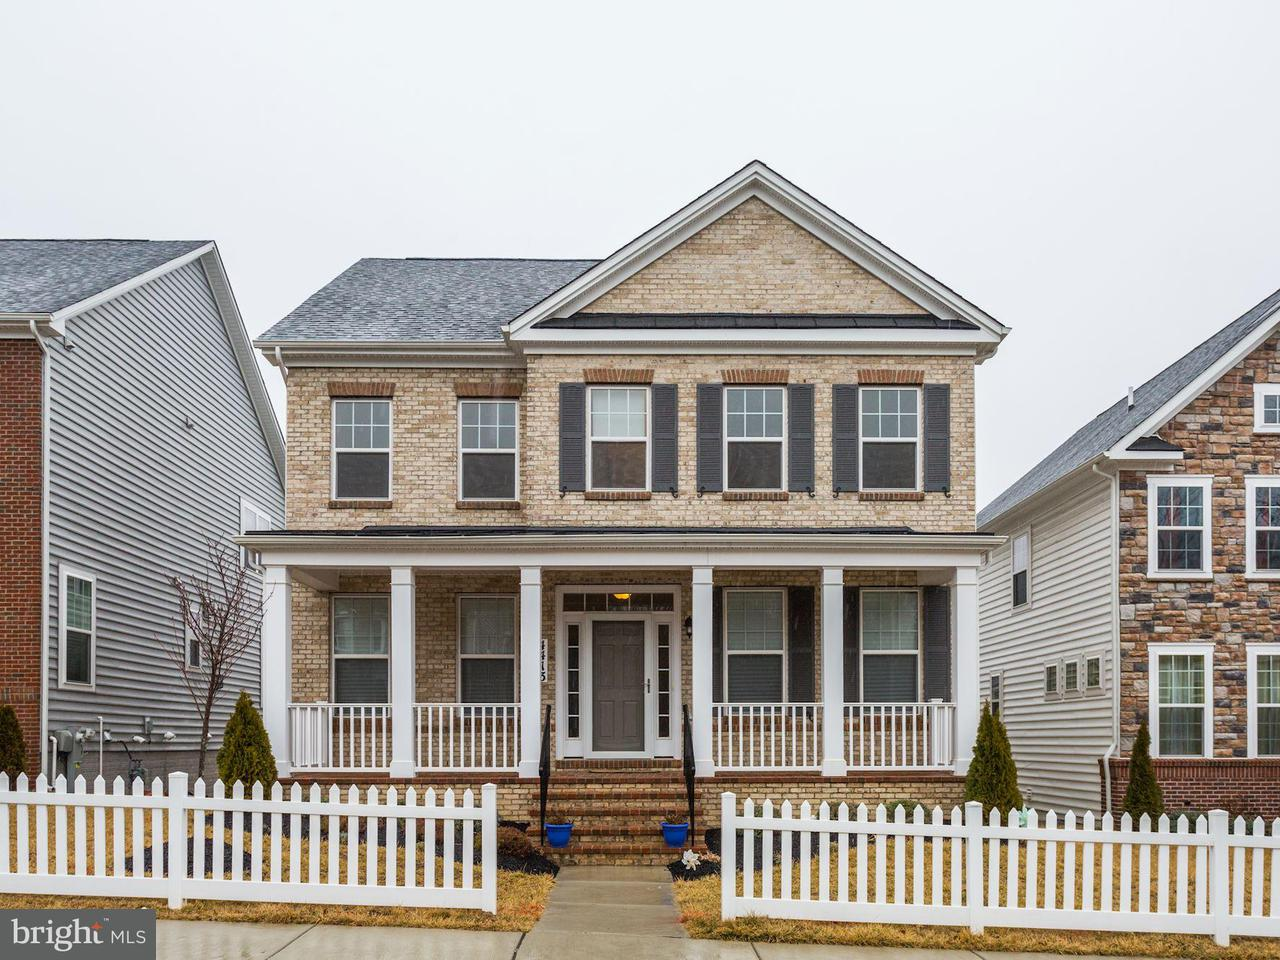 Single Family Home for Sale at 4413 Camley Way 4413 Camley Way Burtonsville, Maryland 20866 United States